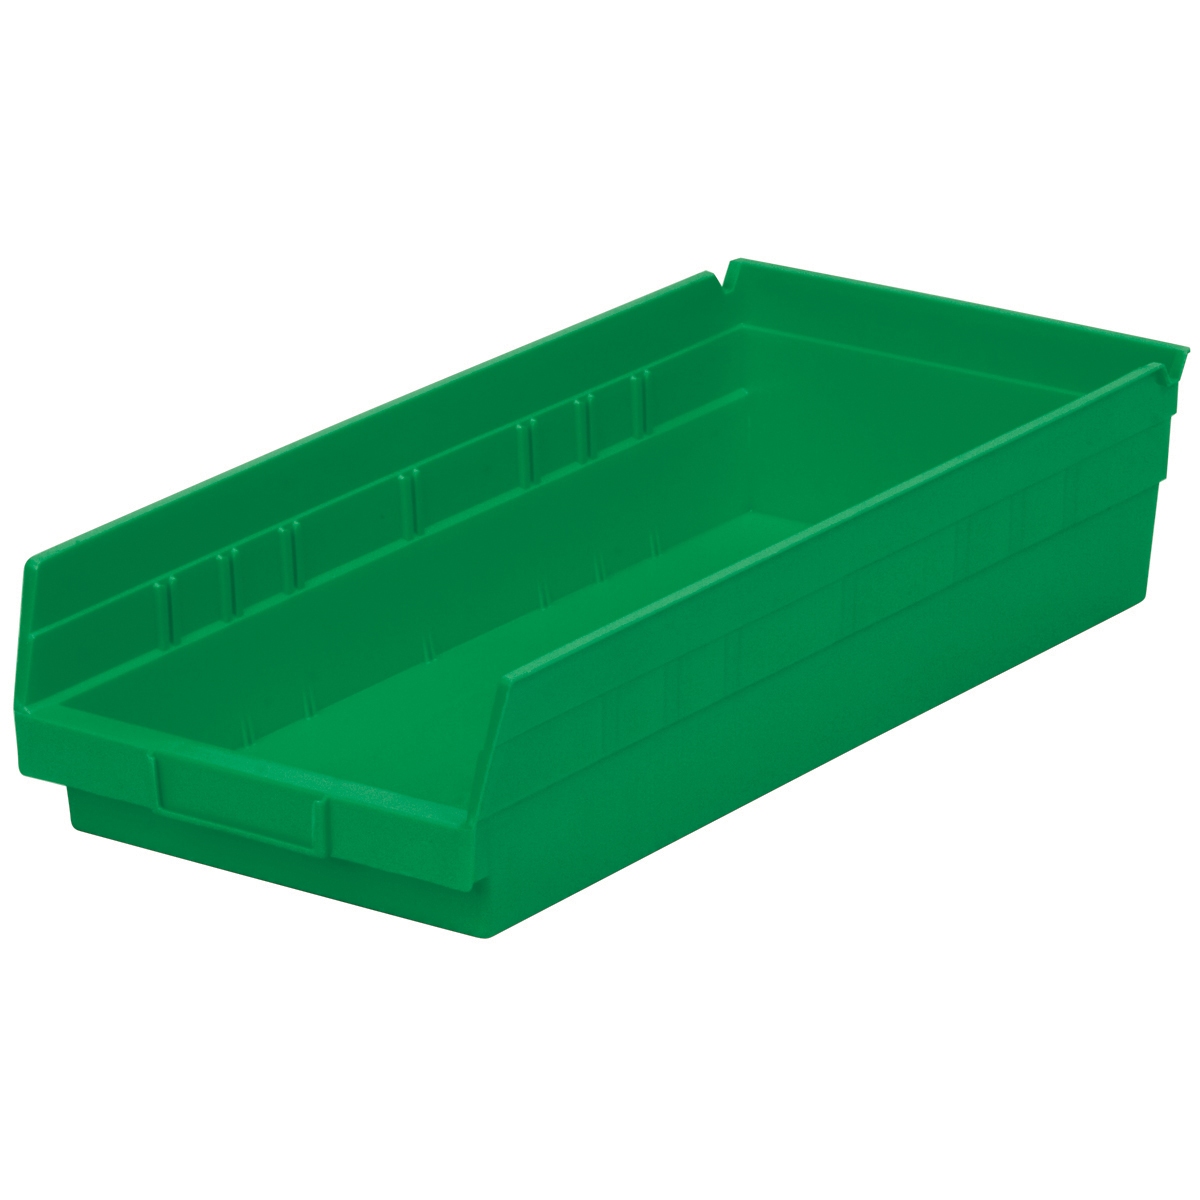 Shelf Bin 17-7/8 x 8-3/8 x 4, Green (30158GREEN).  This item sold in carton quantities of 12.